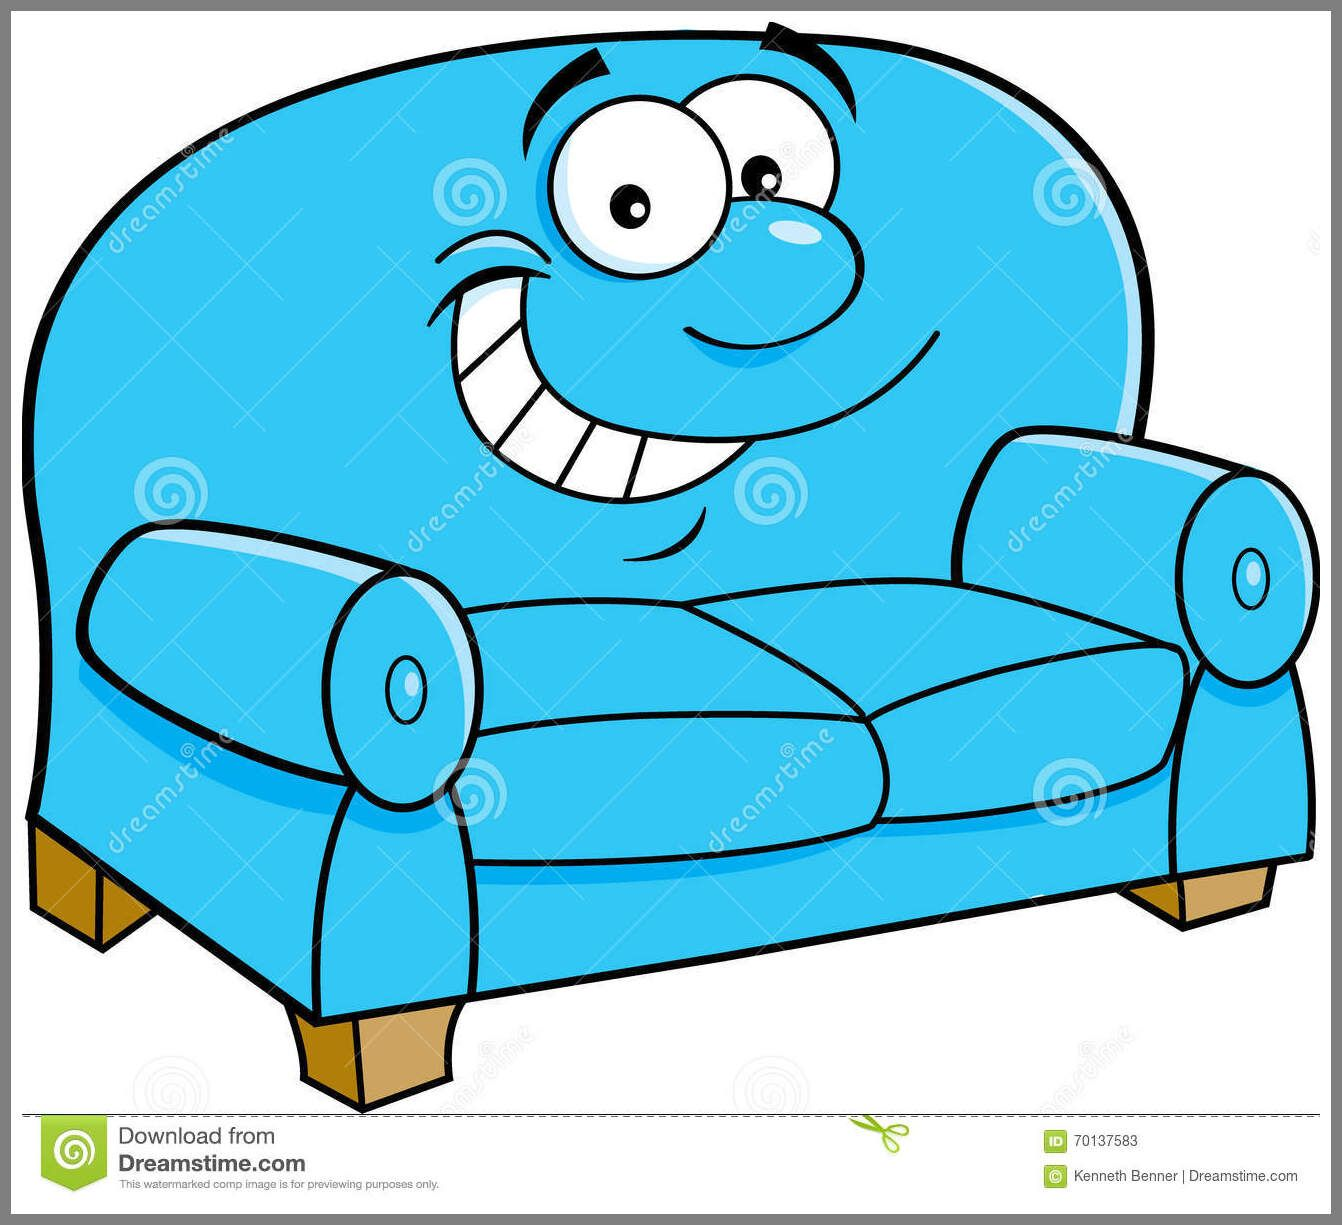 68 Reference Of Couch Illustration Animated In 2020 Cool House Designs Illustration Kids Rugs